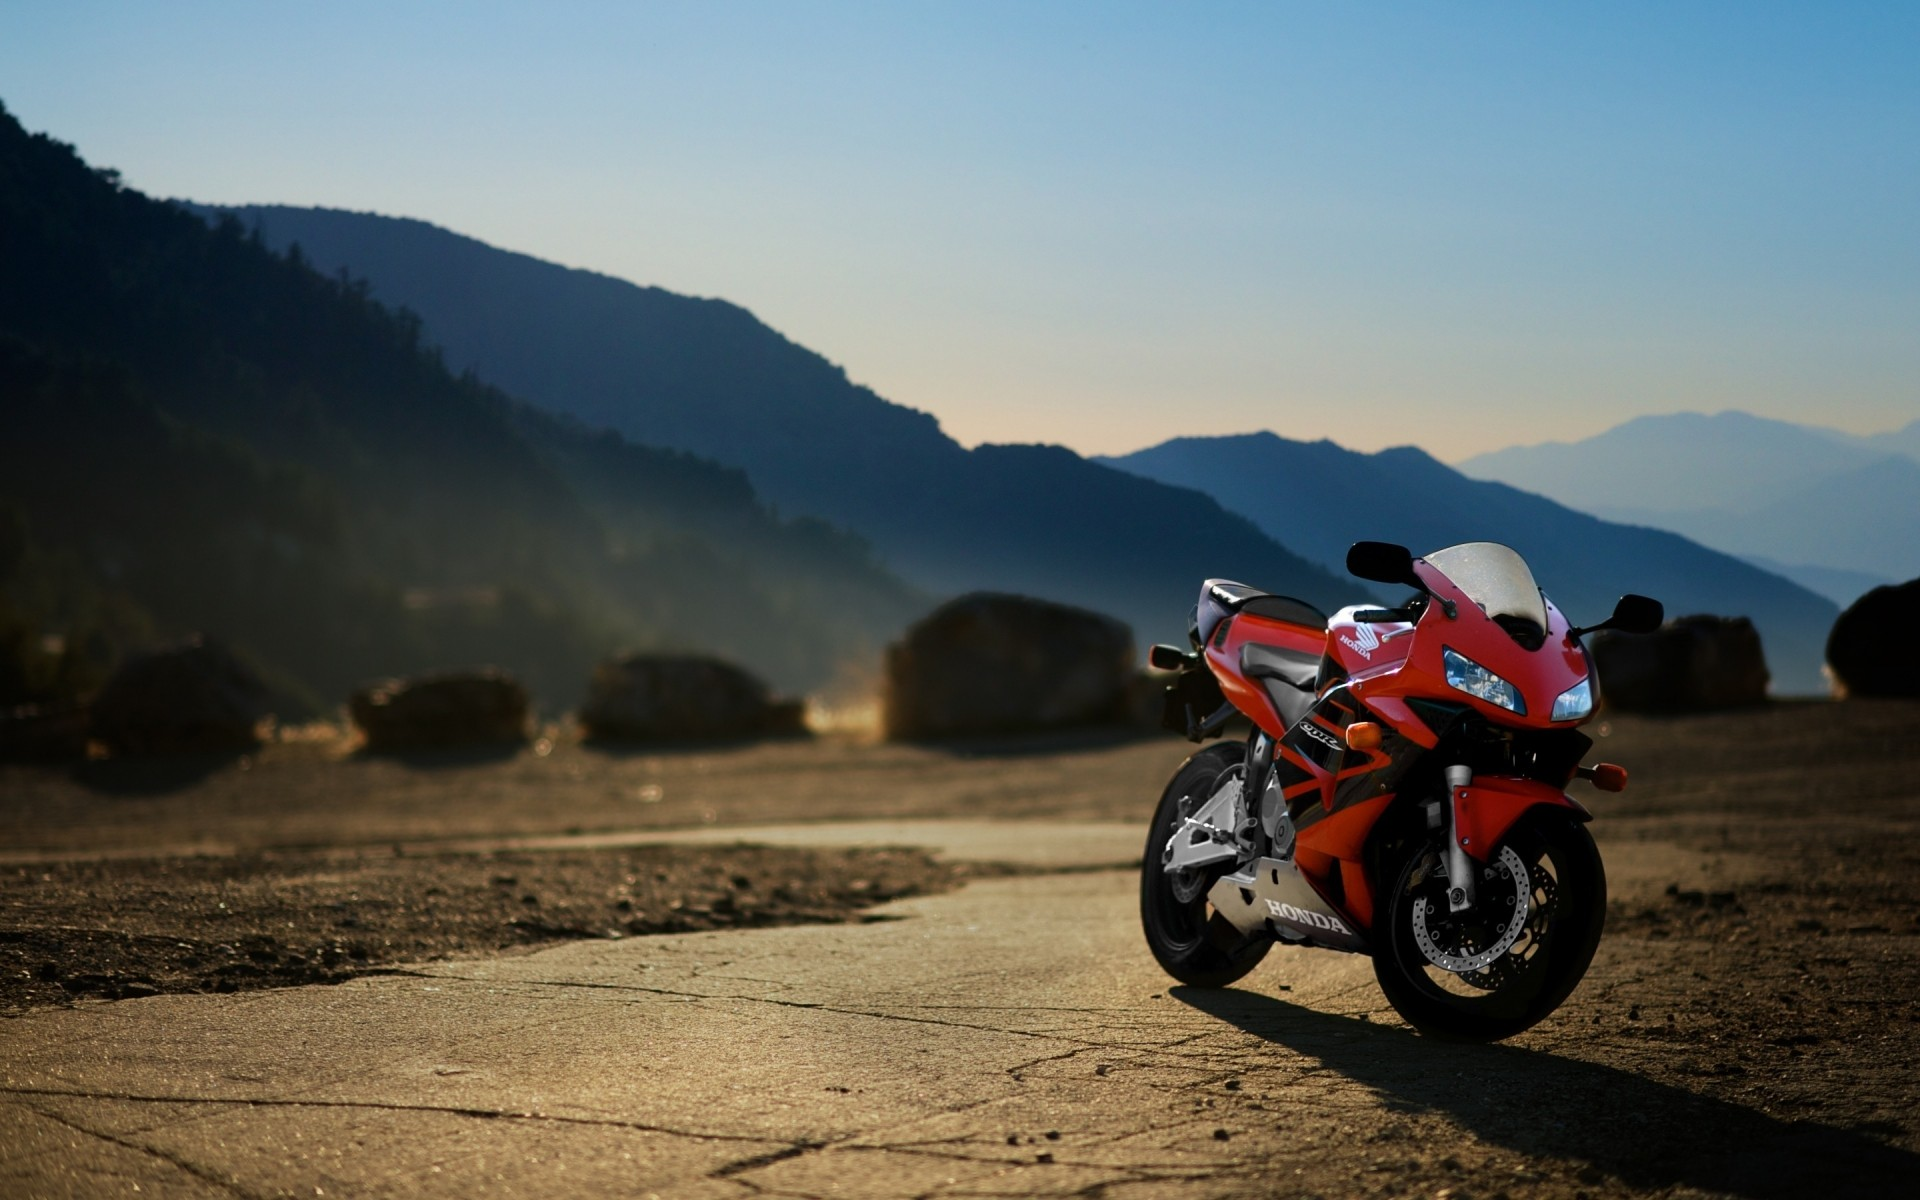 honda bike travel adventure mountain road sunset hurry